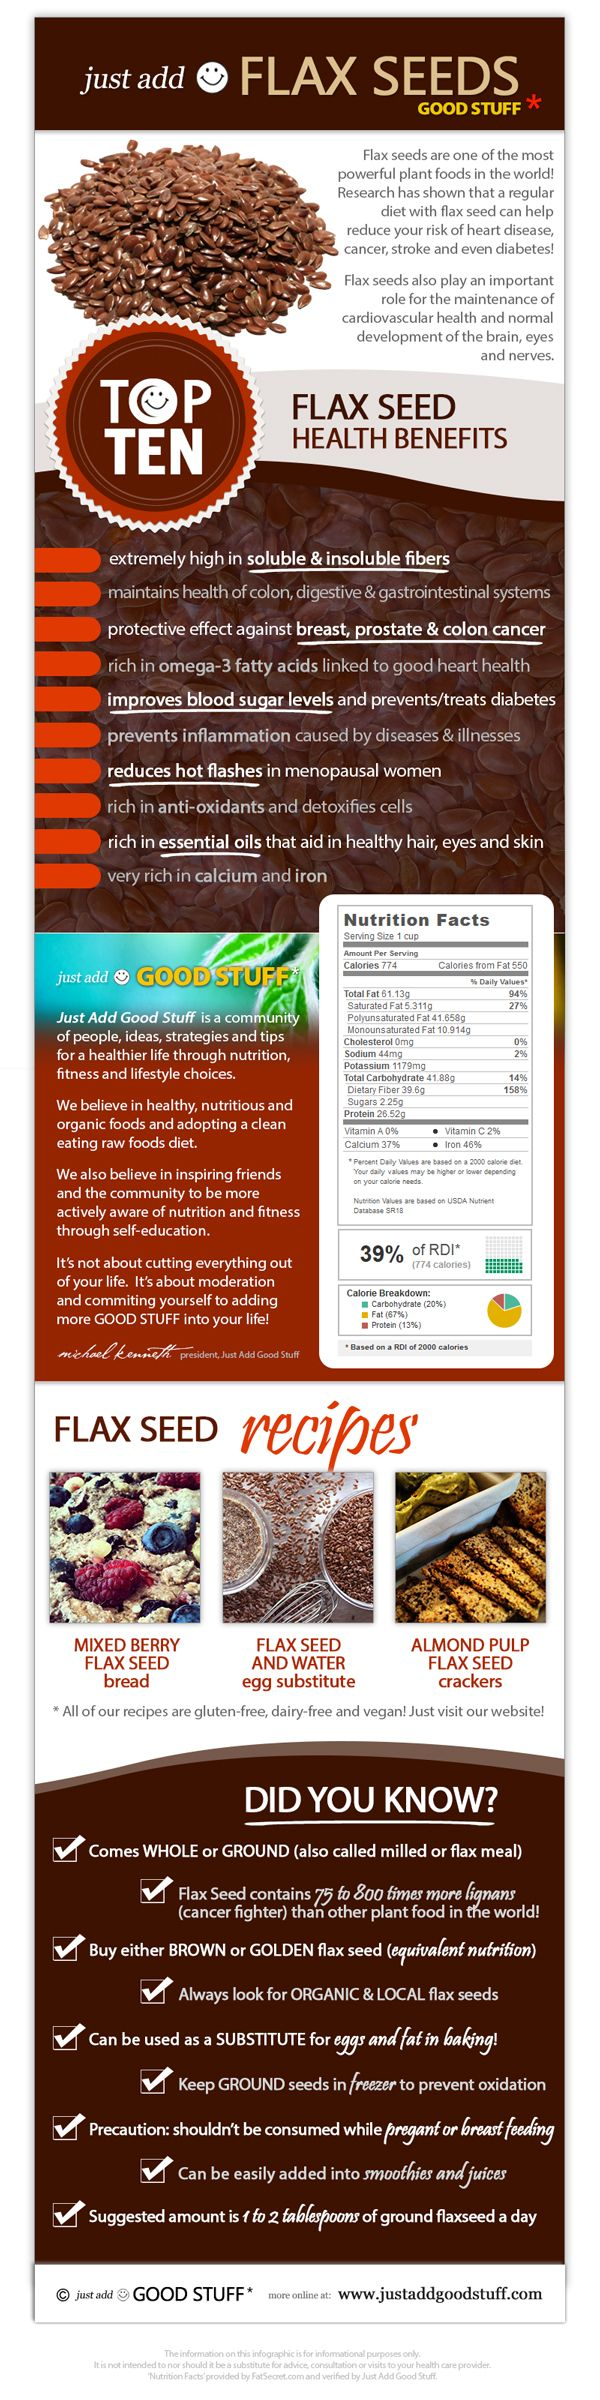 Just Add Good Stuff Flaxseed Infographic detailing the health benefits in a visual way #health #nutrition